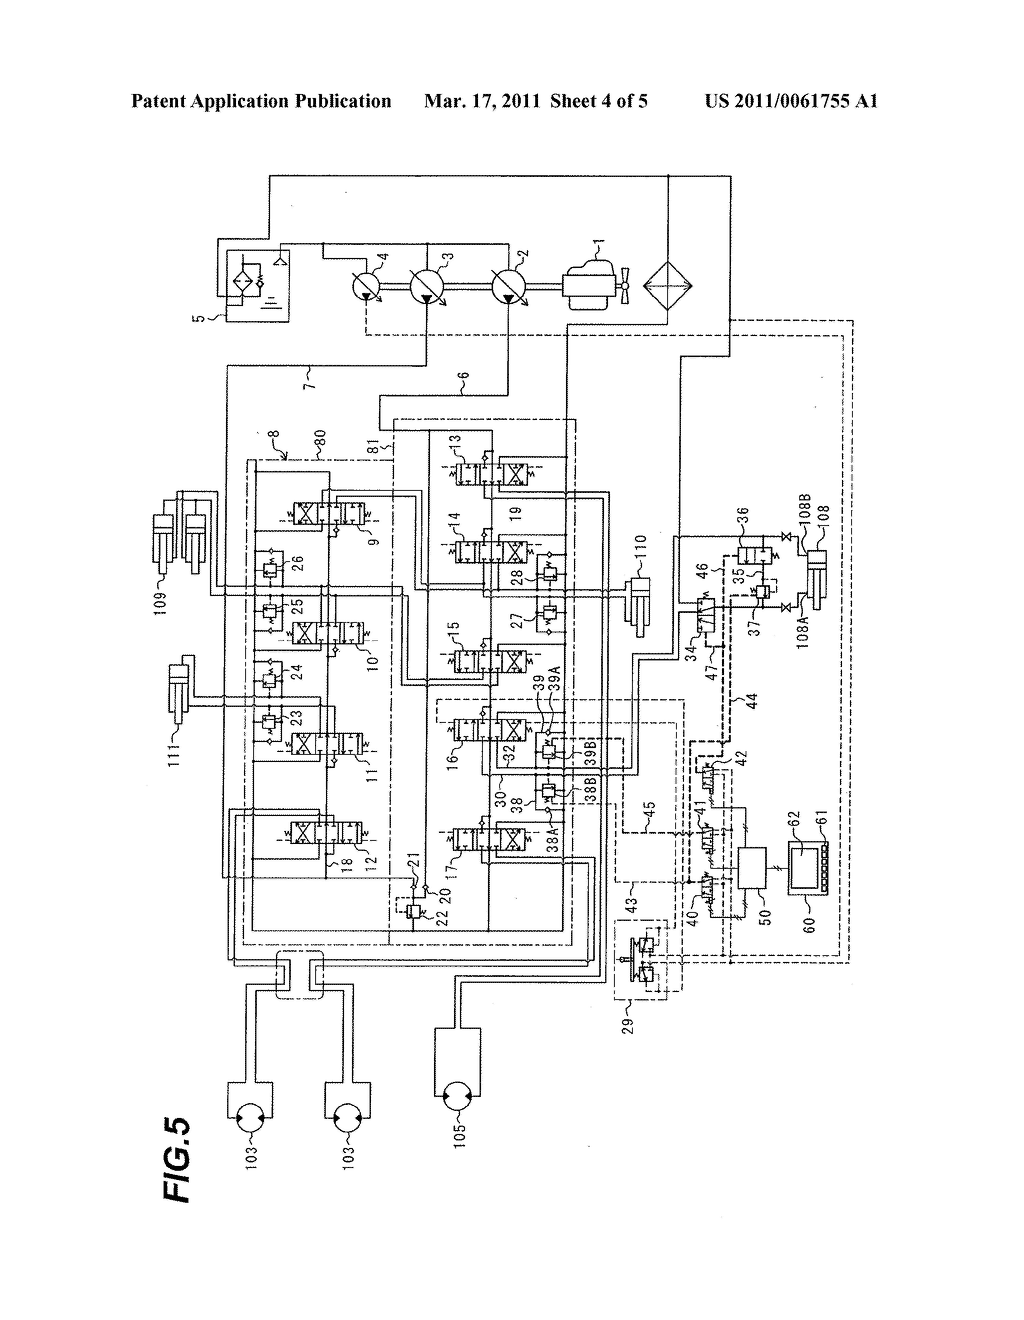 hight resolution of hydraulic circuit system for hydraulic excavator diagram schematic and image 05